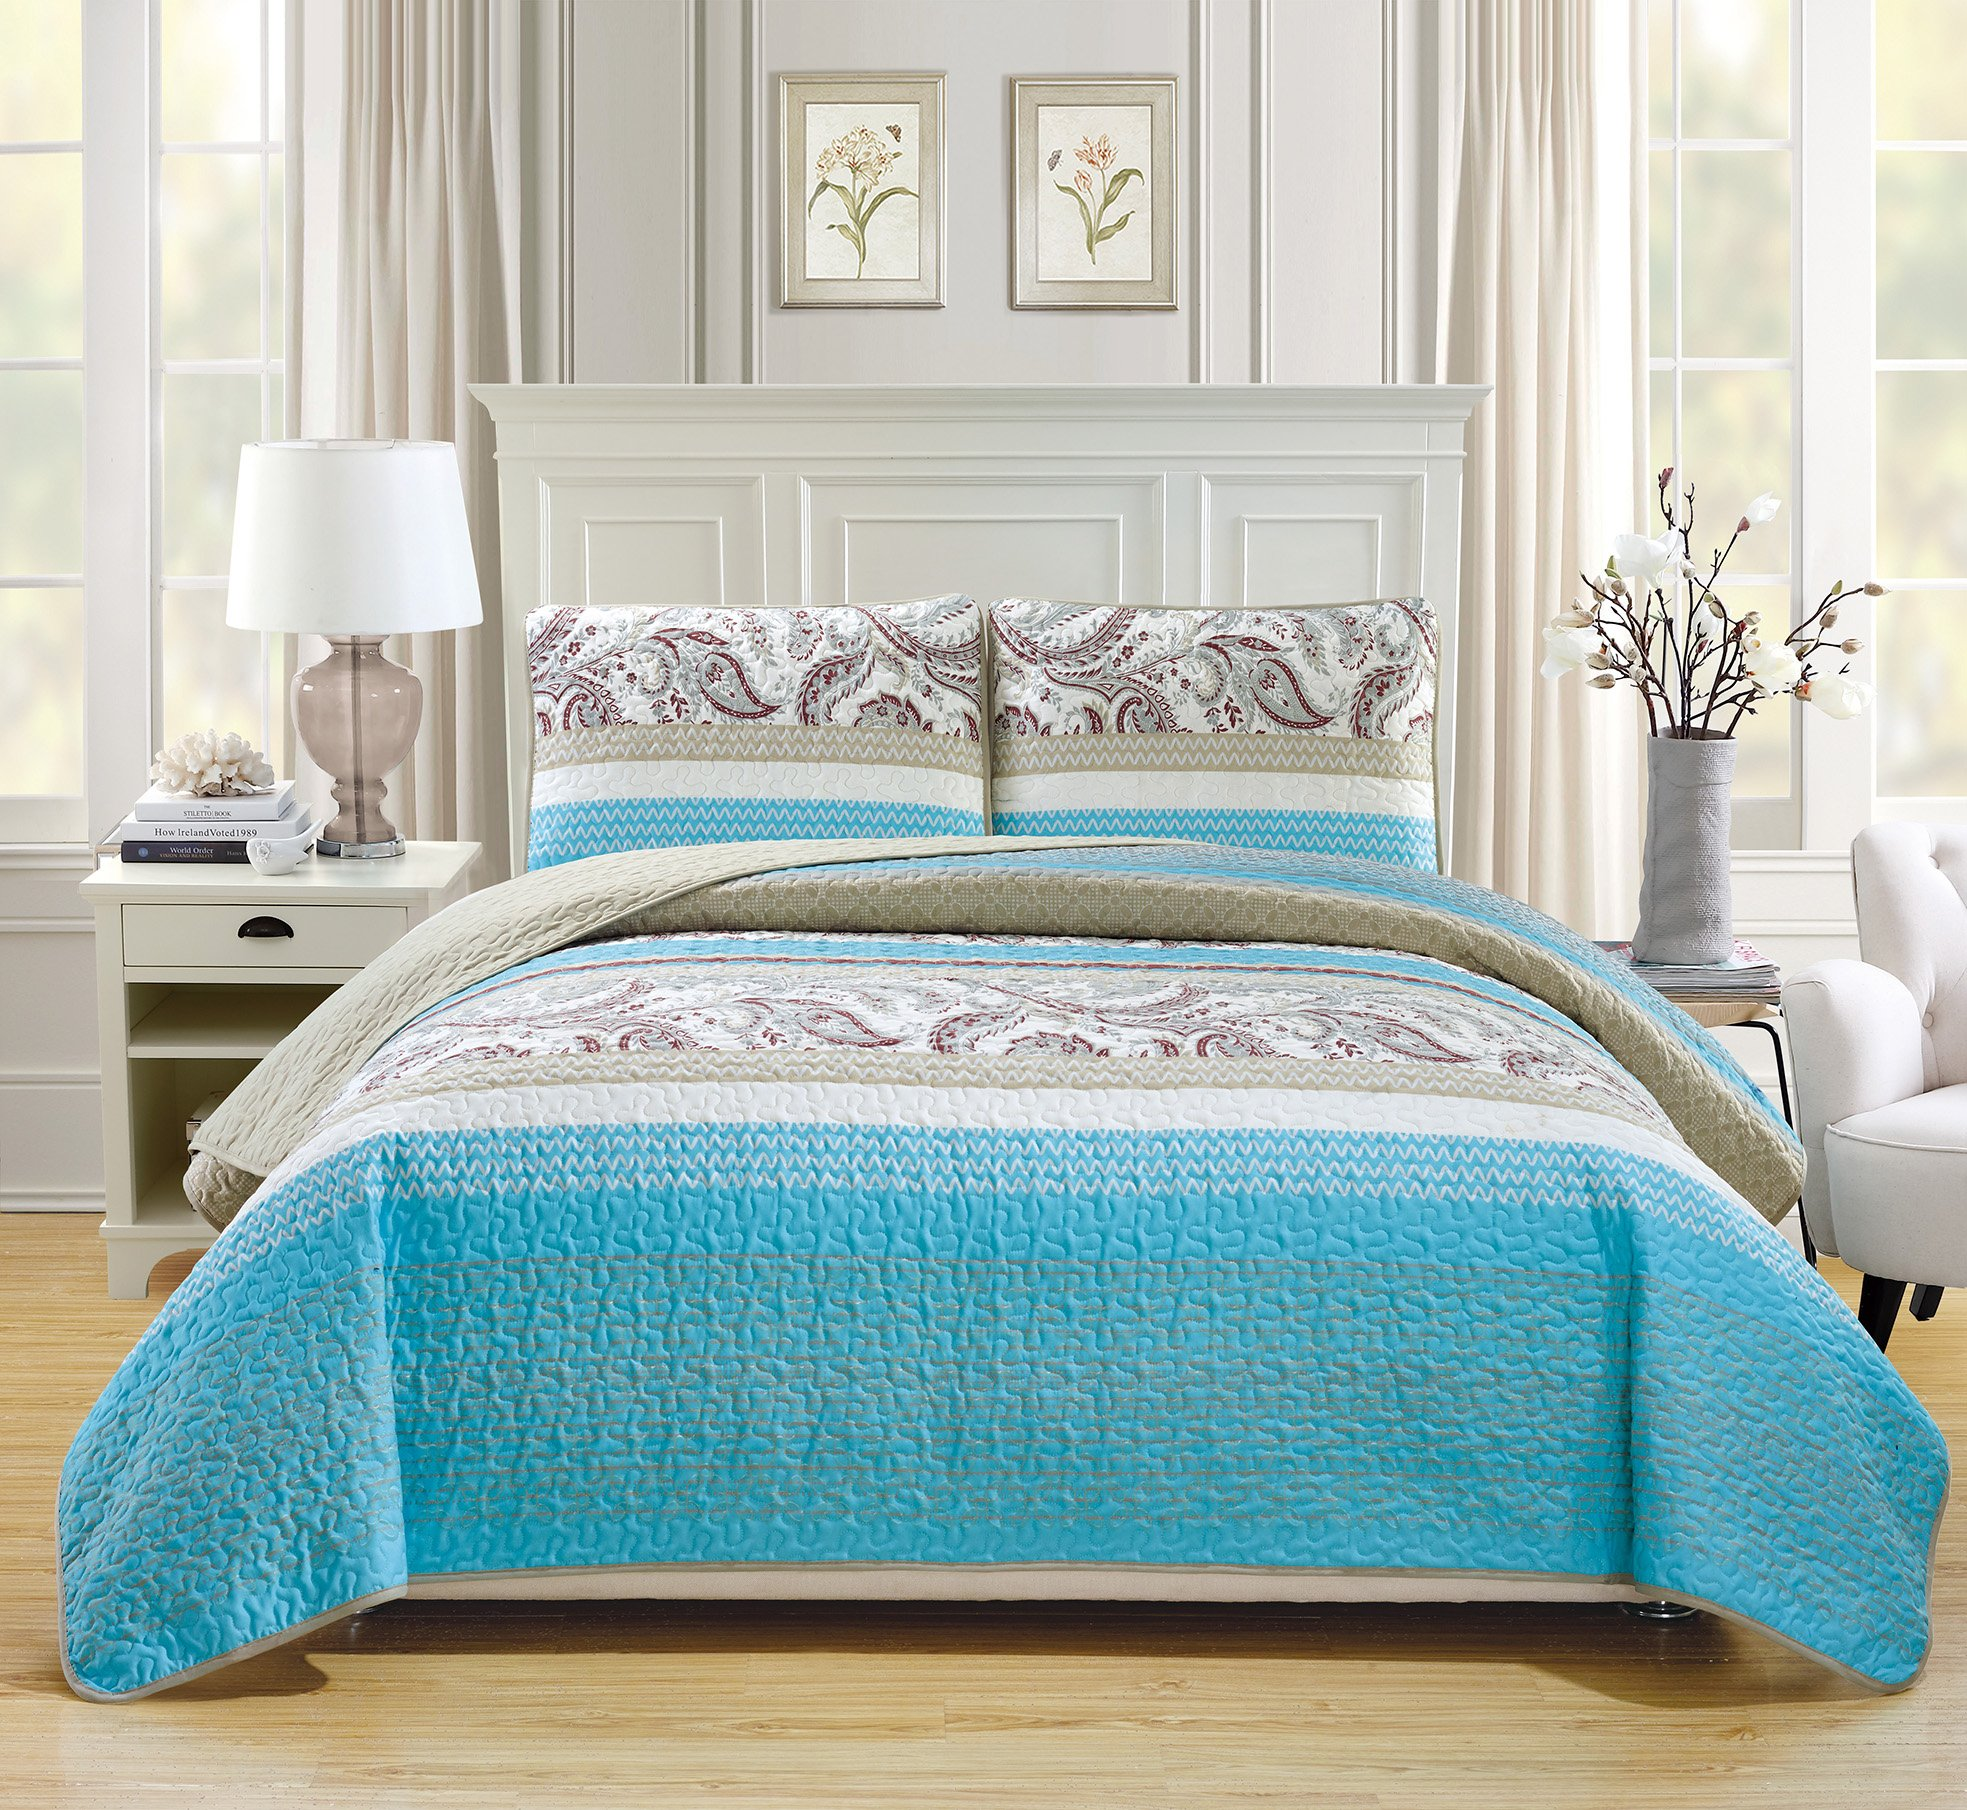 Mk Collection 3pc Bedspread coverlet quilted Floral Off White Turquoise Grey Taupe Burgundy King/California King Over Size 118'' x 95'' #Lisbon New 1